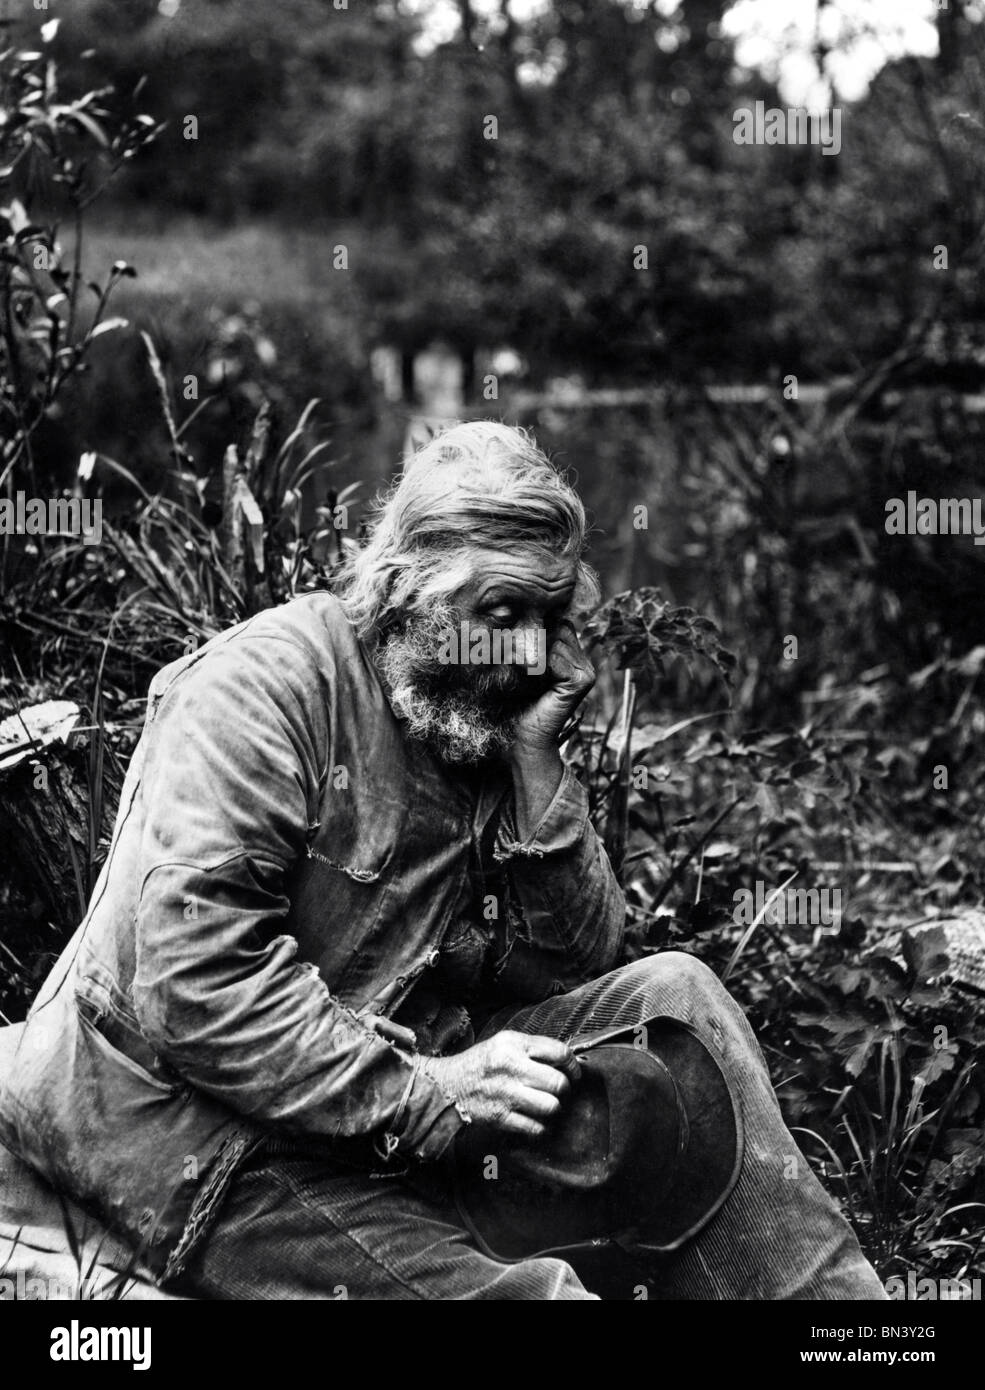 A Tramp, photo Paul Martin. England, 1896 - Stock Image